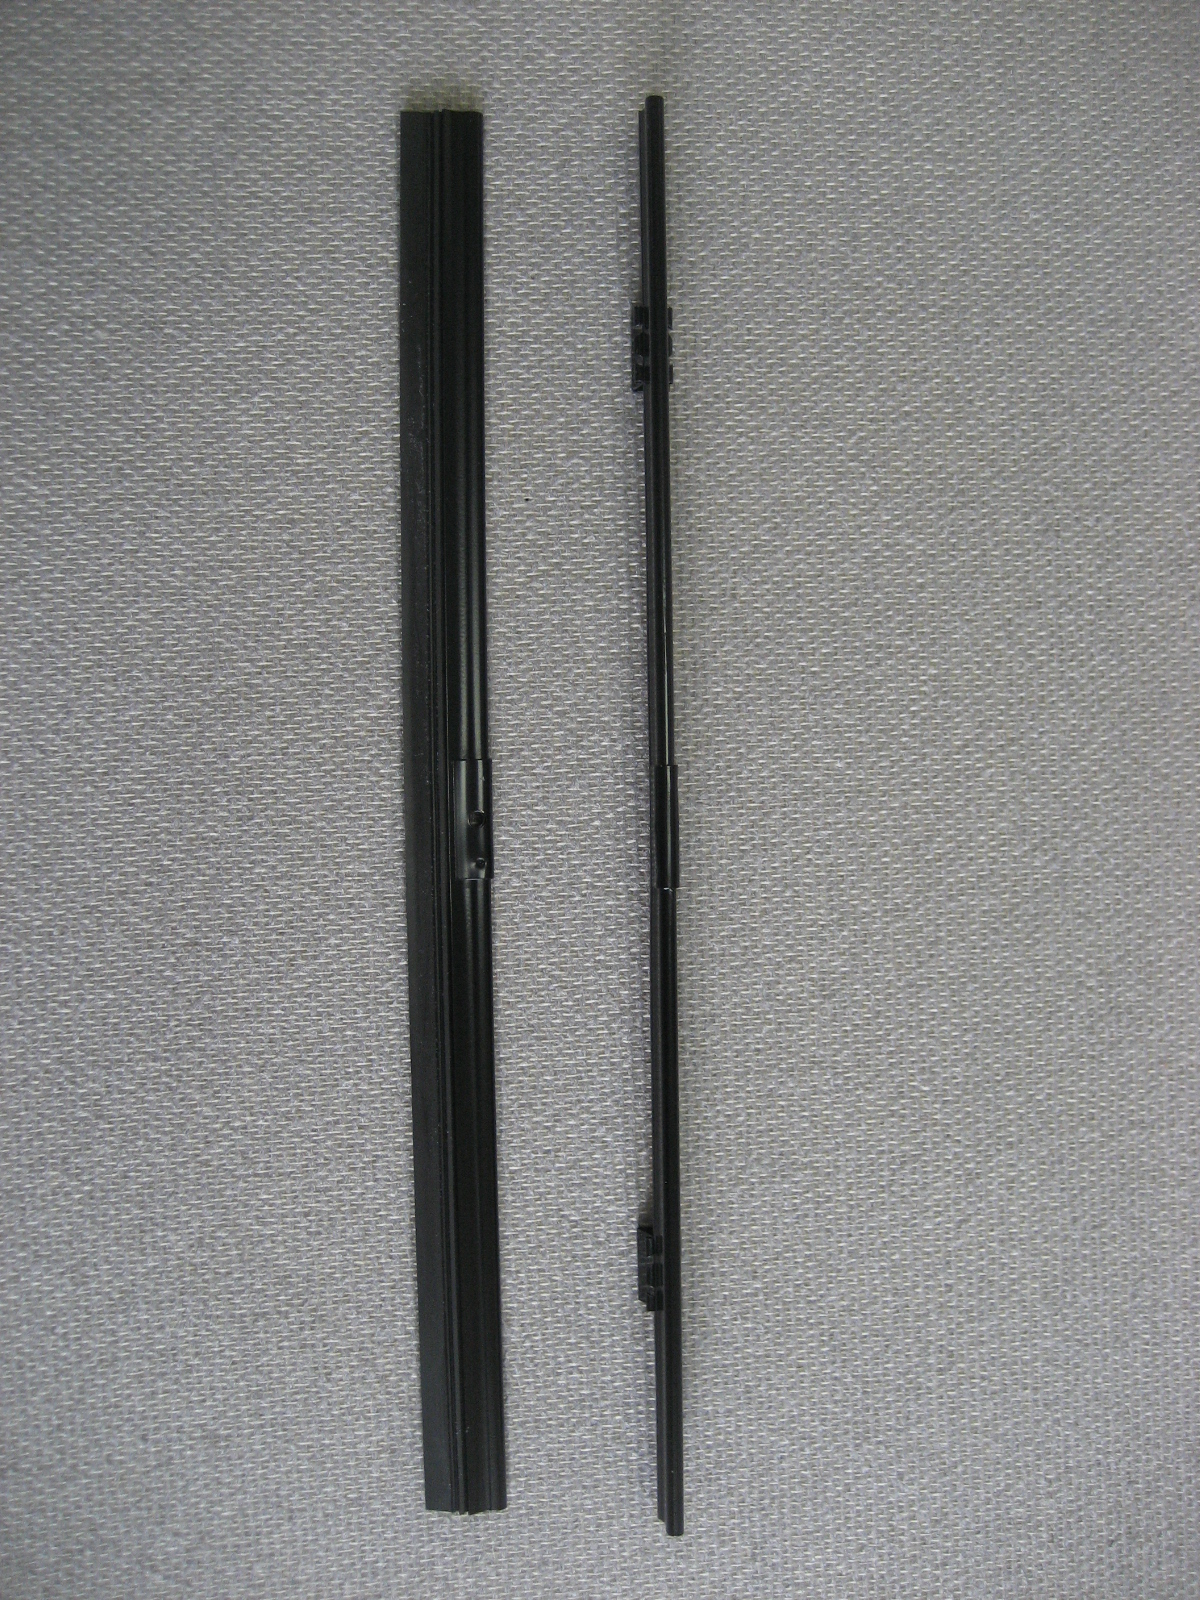 WT3-18 Wiper Technologies WindShield Wiper Blade 18 Inch Length